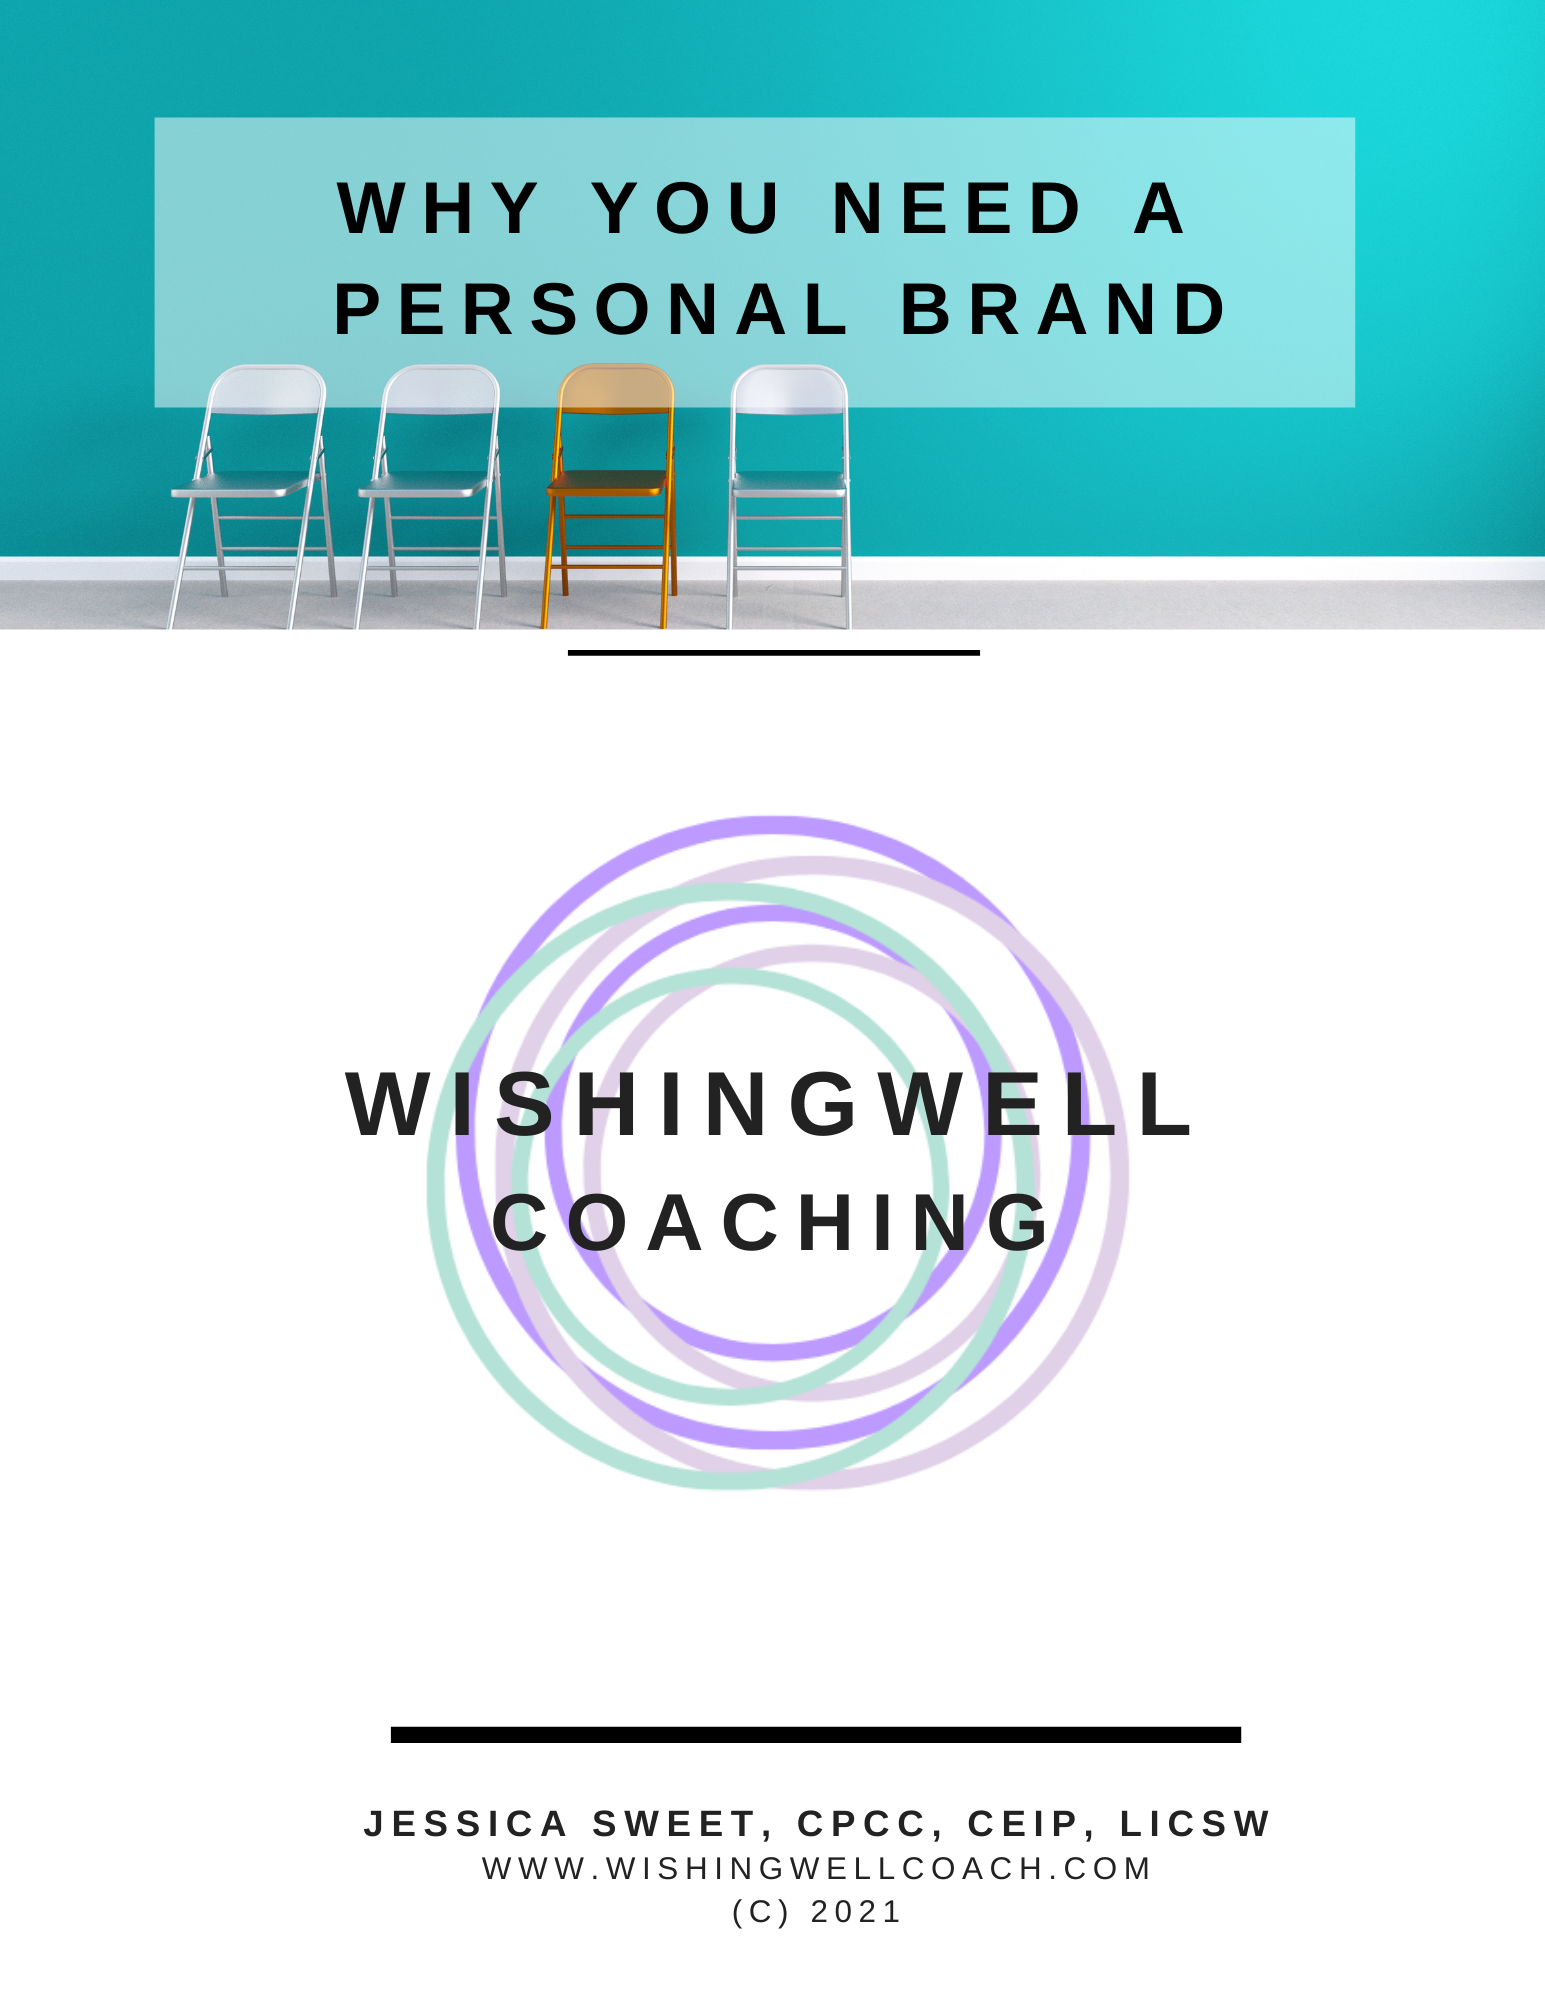 Why you need a personal brand